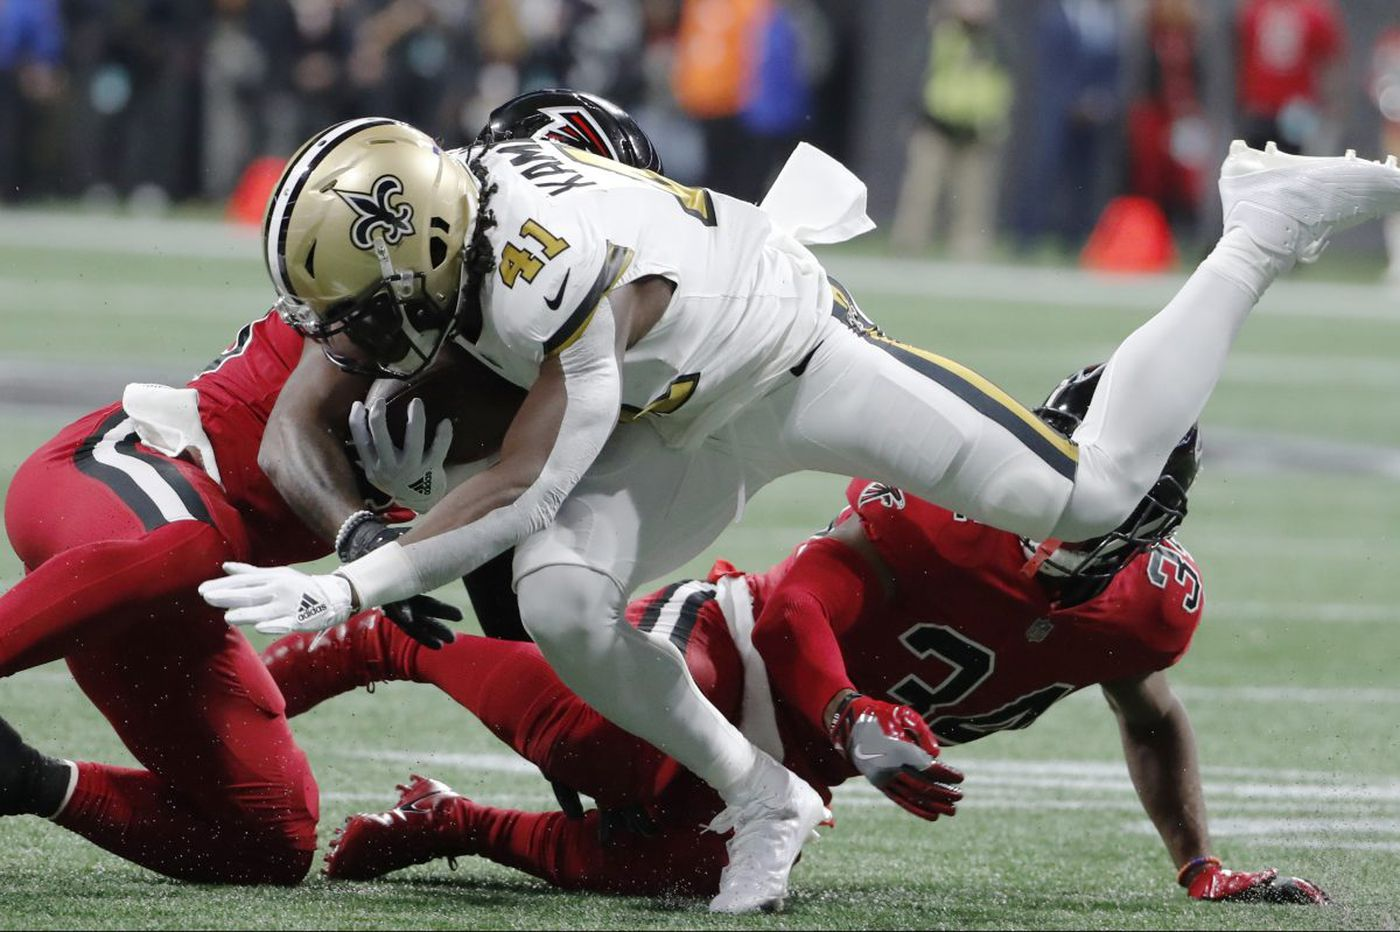 Falcons help out Eagles by beating Saints; Kamara hurt